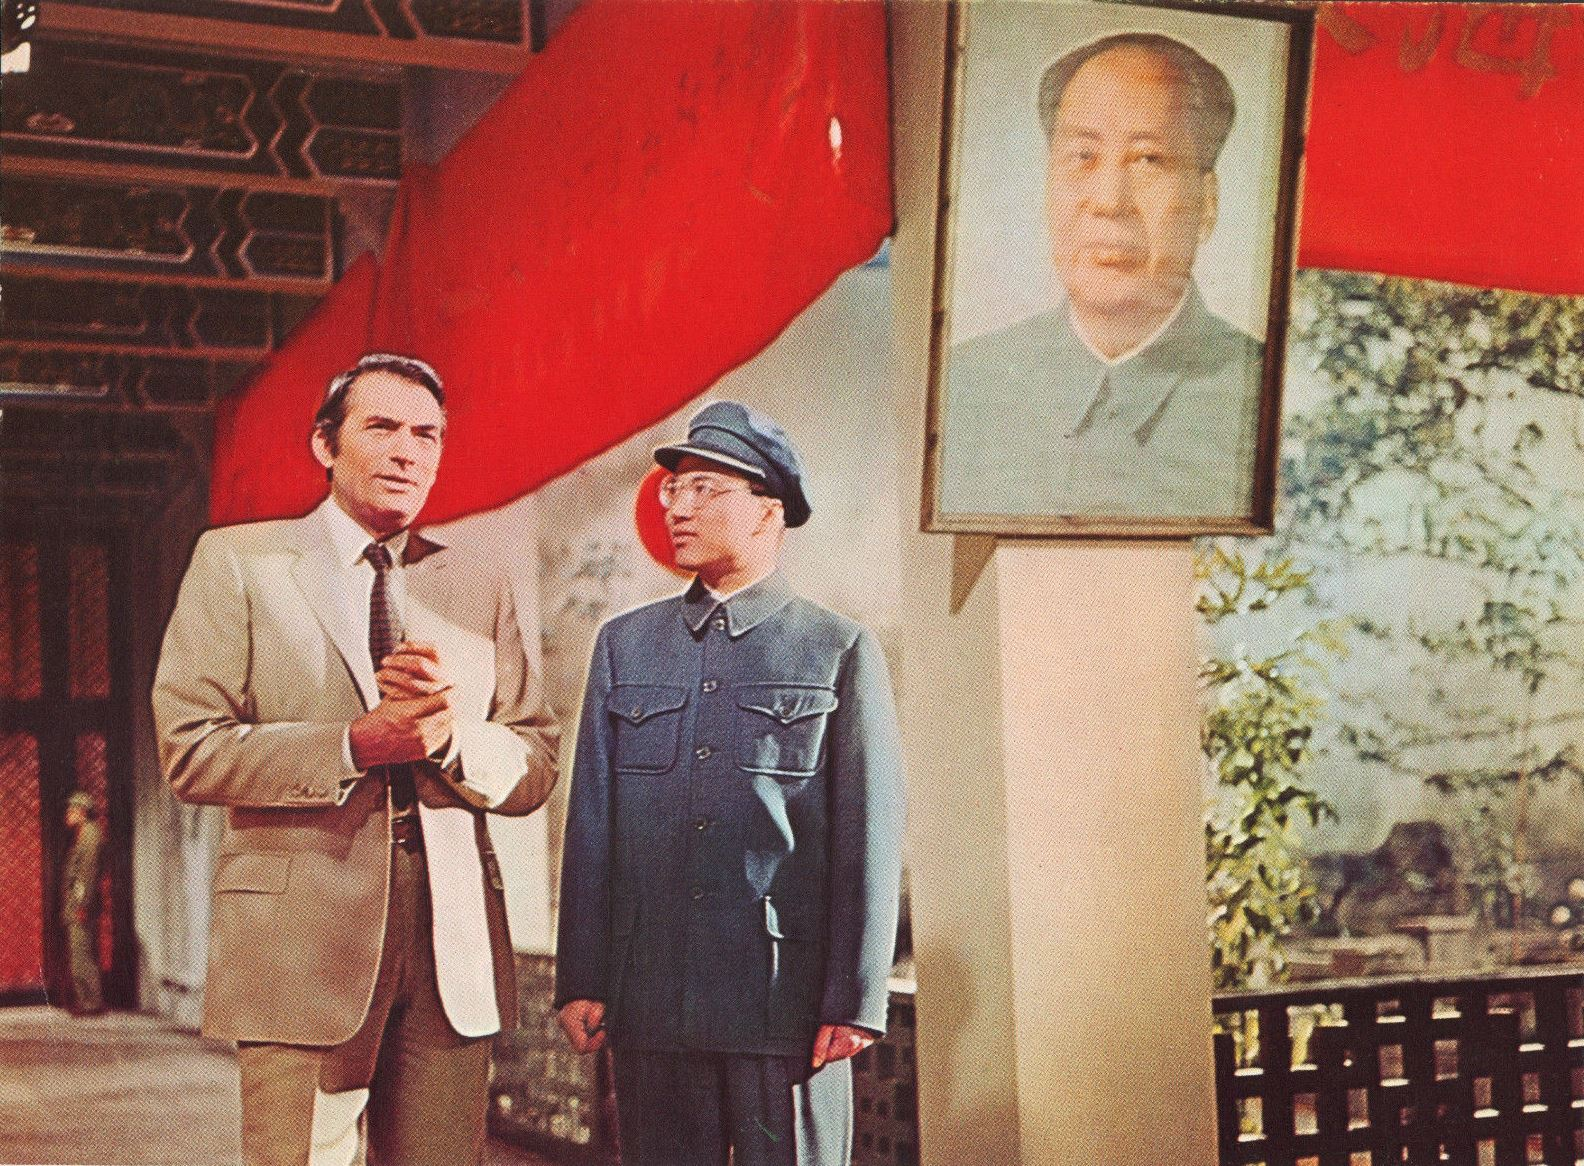 Gregory Peck in Communist China in The Chairman (1969)